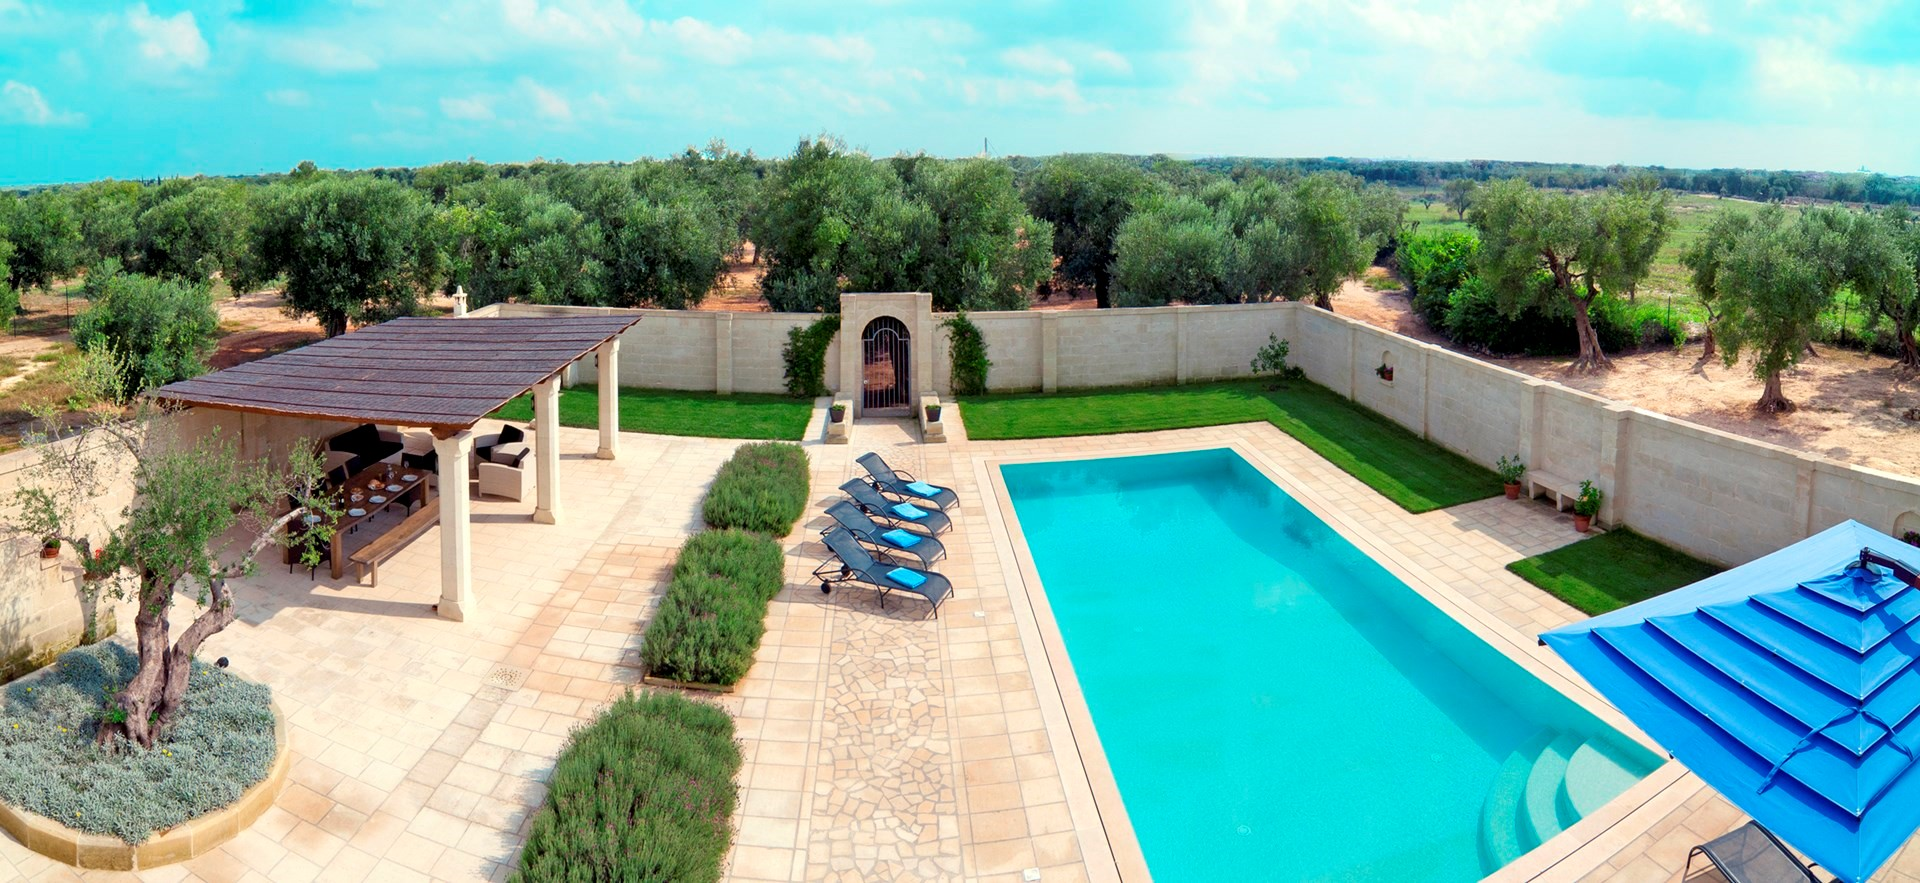 4-bedroom-villa-masseria-salentina